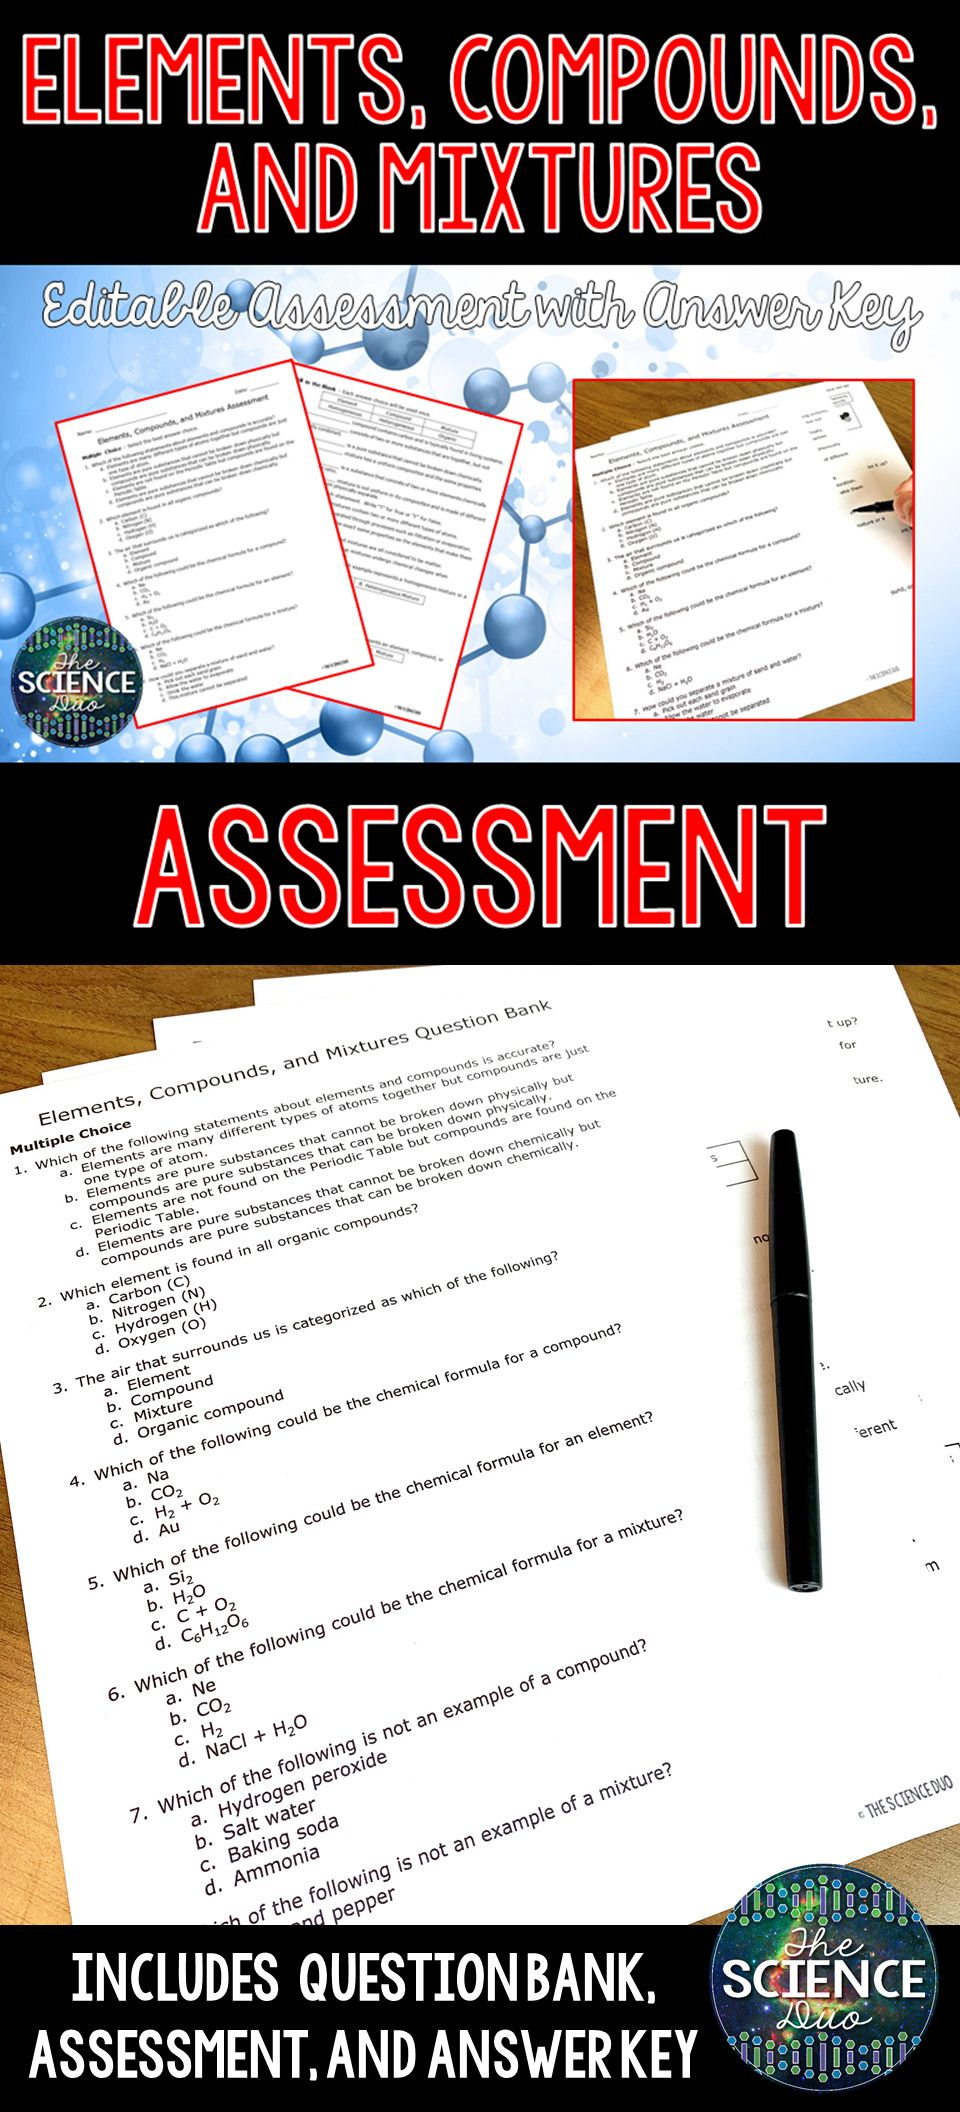 5 Elements Compounds And Mixtures Worksheet Answer Key In 2020 Science Assessments Compounds And Mixtures Elements Compounds And Mixtures